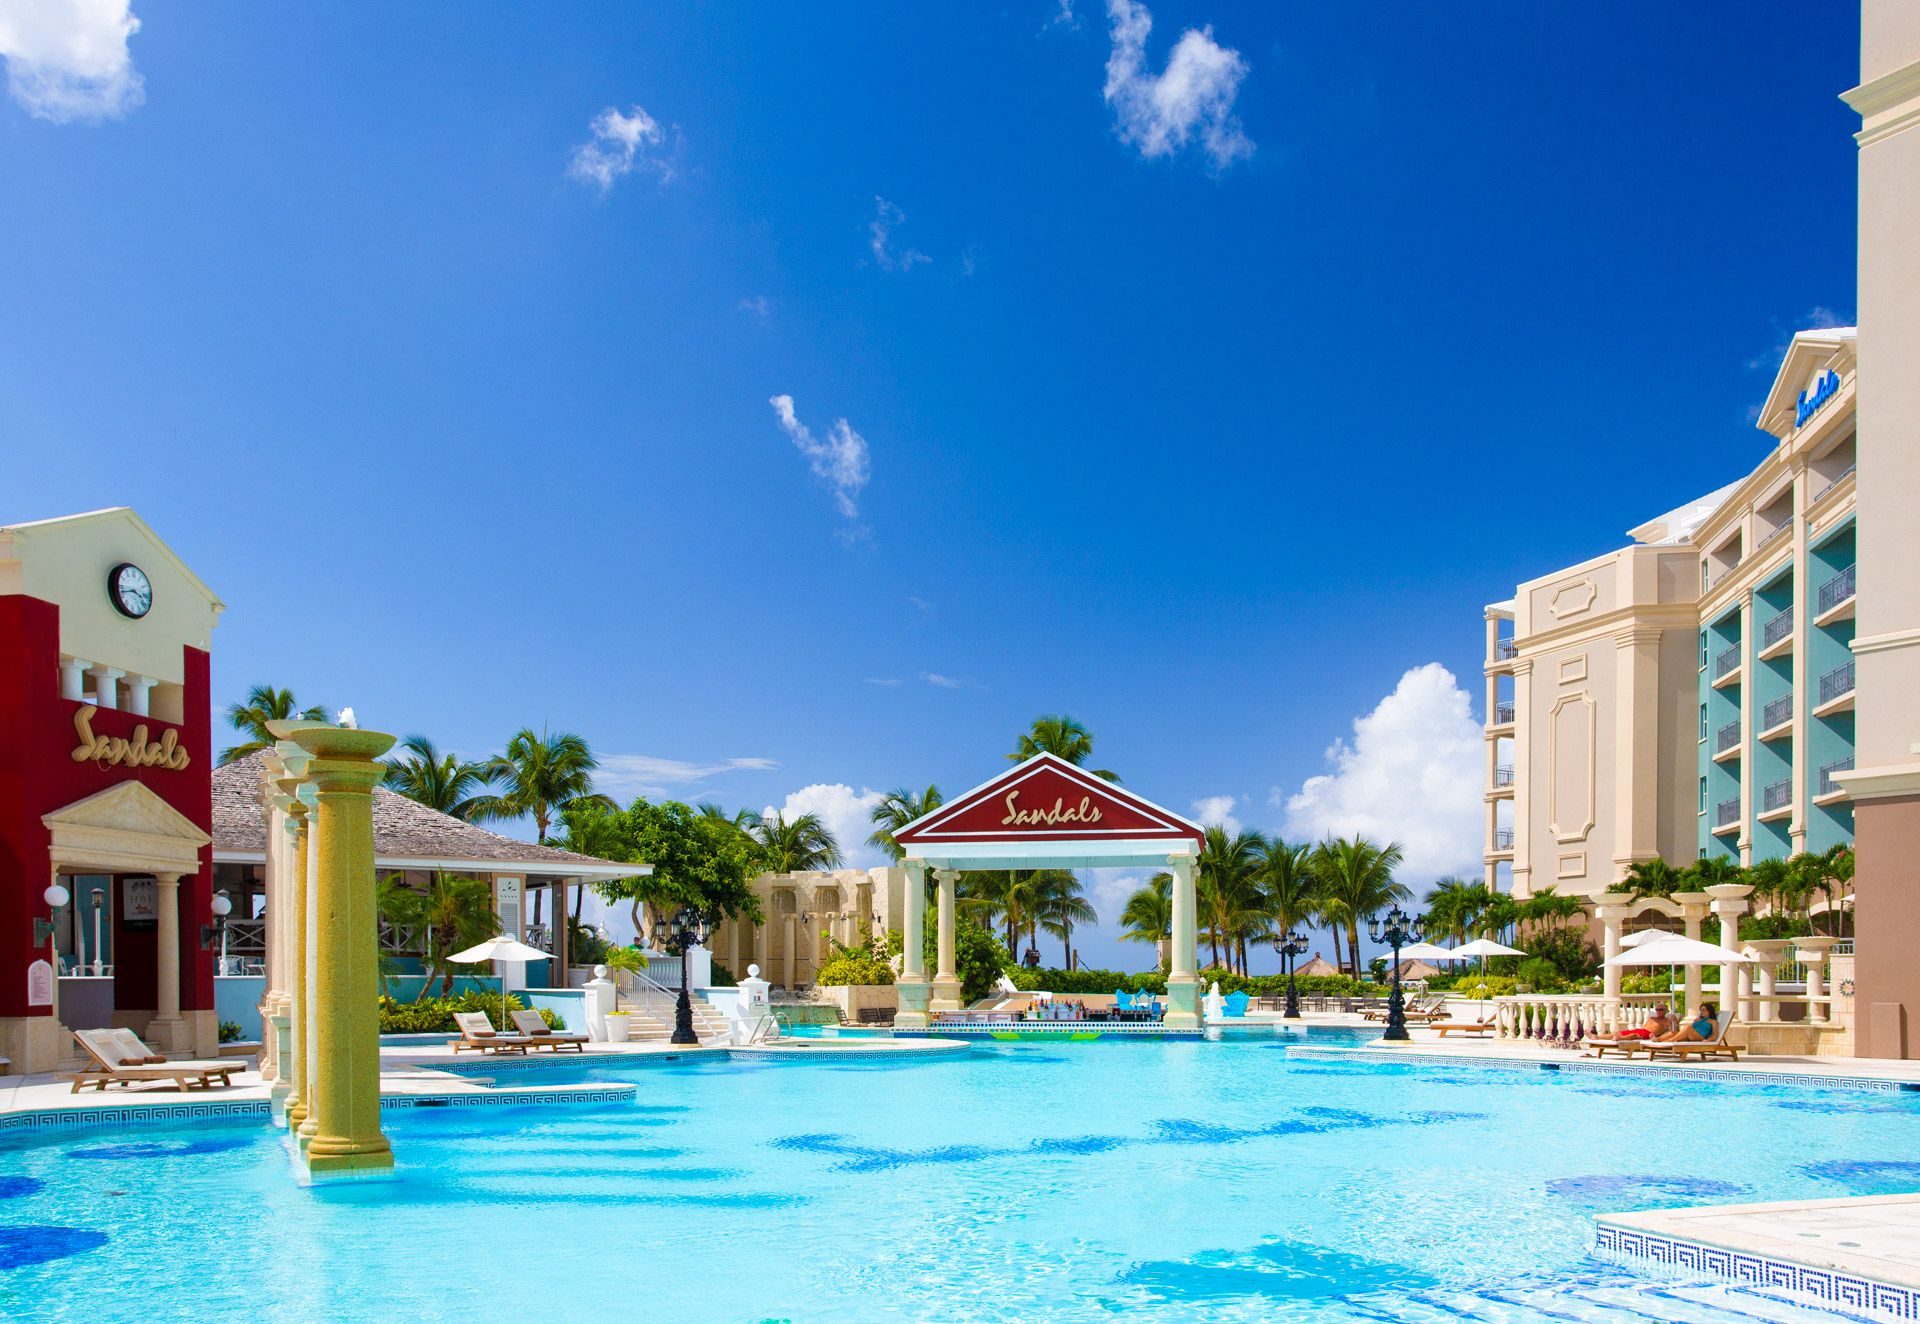 sandals royal bahamian swim up bar